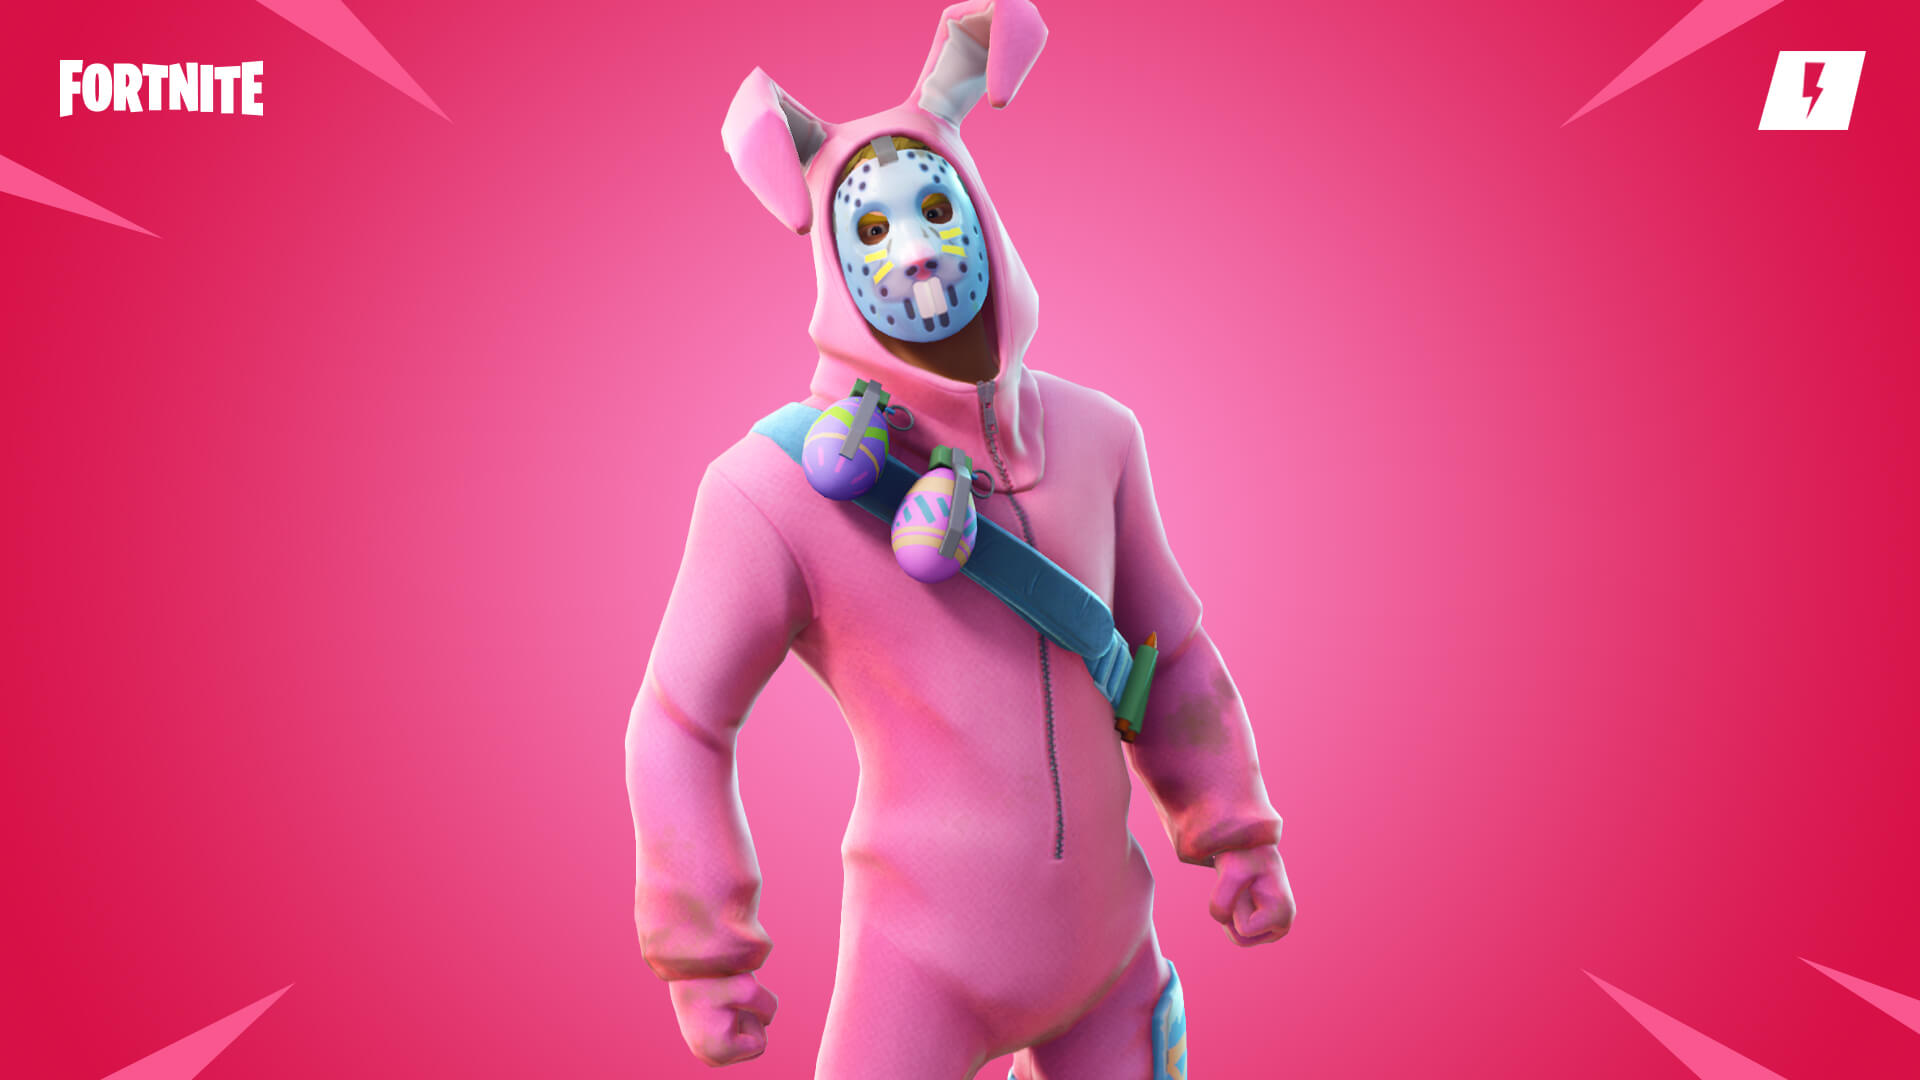 Fortnite Save The World Rabbit Raider Jonesy